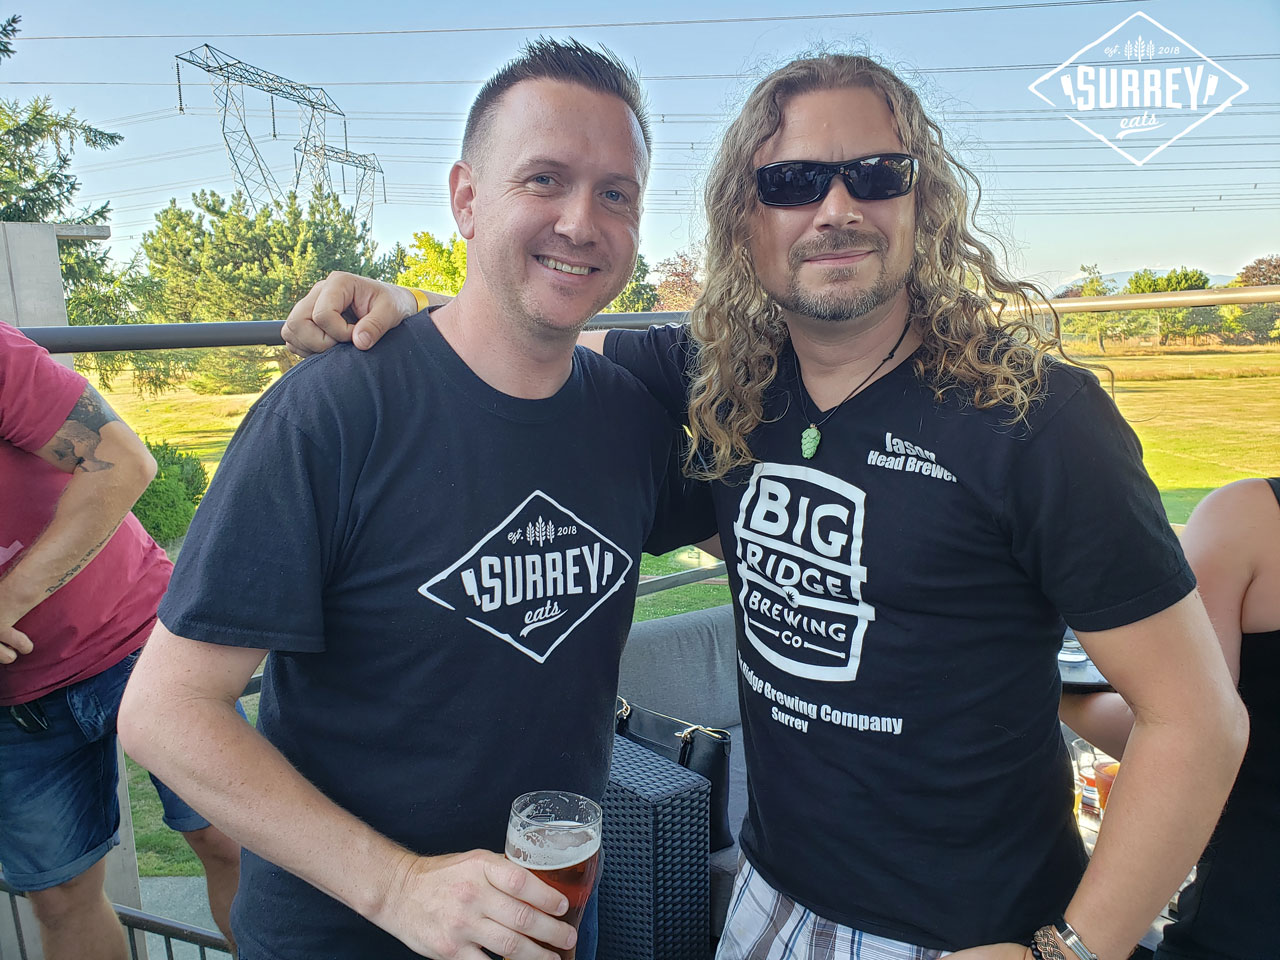 Craig from Surrey Eats holds a beer while standing with Big Ridge Brewing